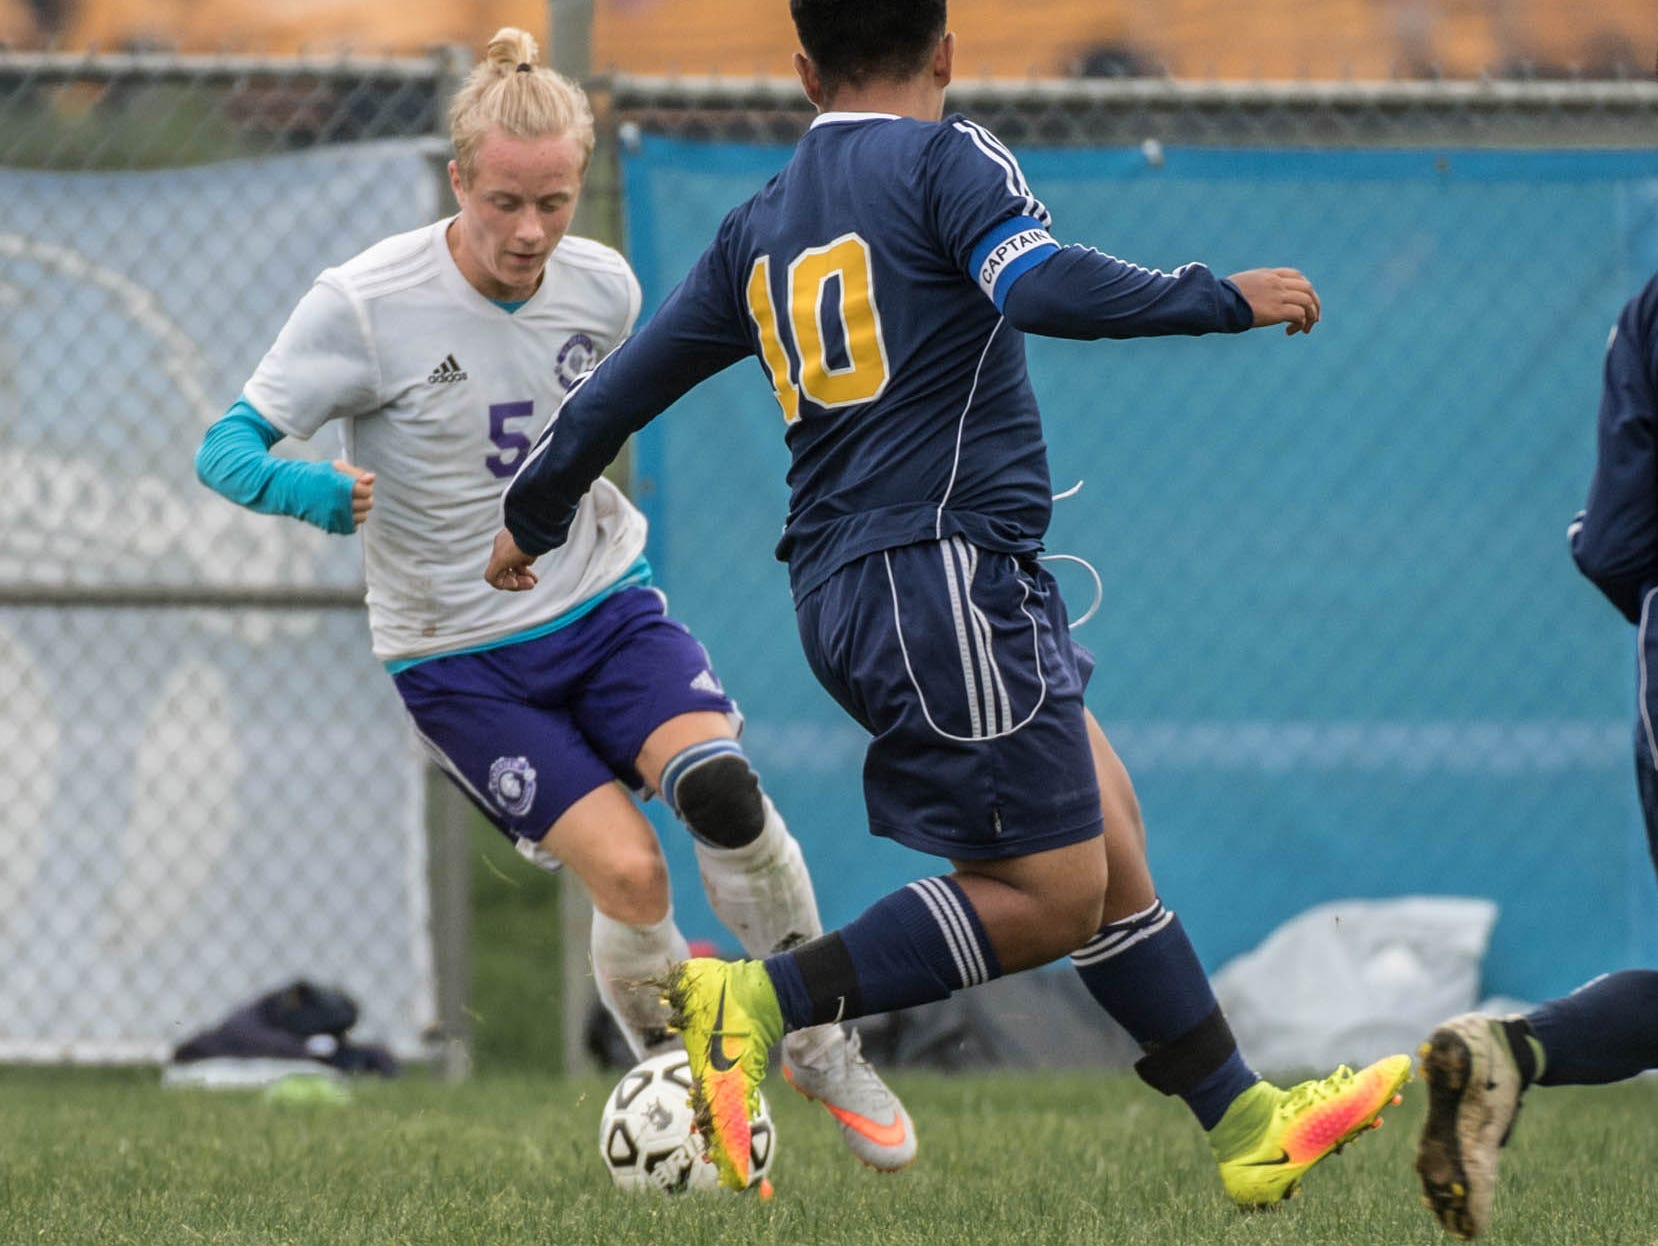 Lakeview's Theodor Pfeiff (5) and Battle Creek Central's Jesus Bautista (10) and Allen Duran (8) go for the ball during the All-City Soccer Championship on Saturday.